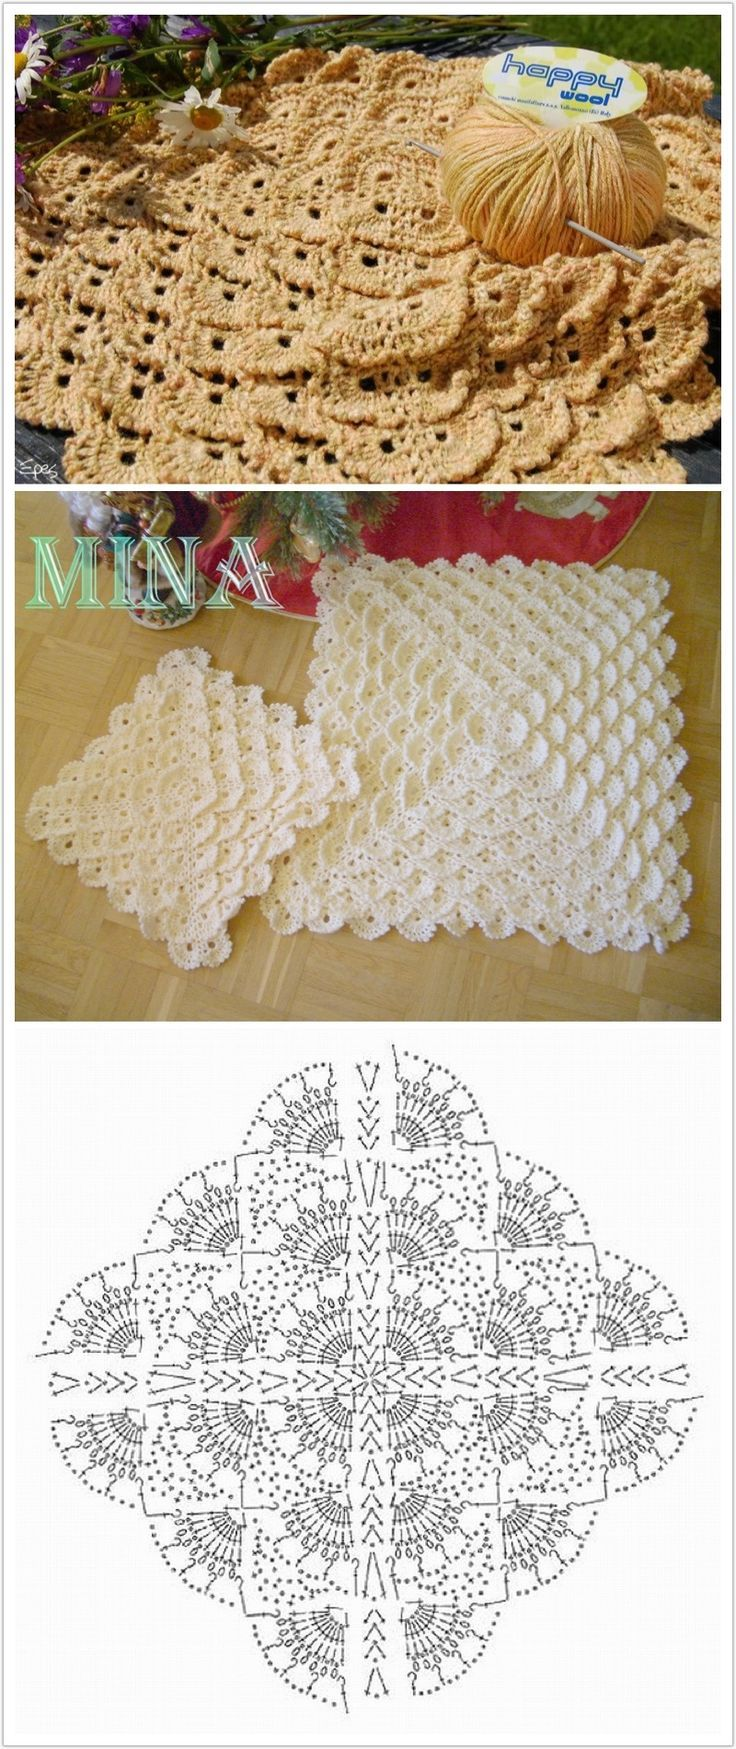 125 best 1 images on Pinterest | Crocheting, Crochet shawl and ...